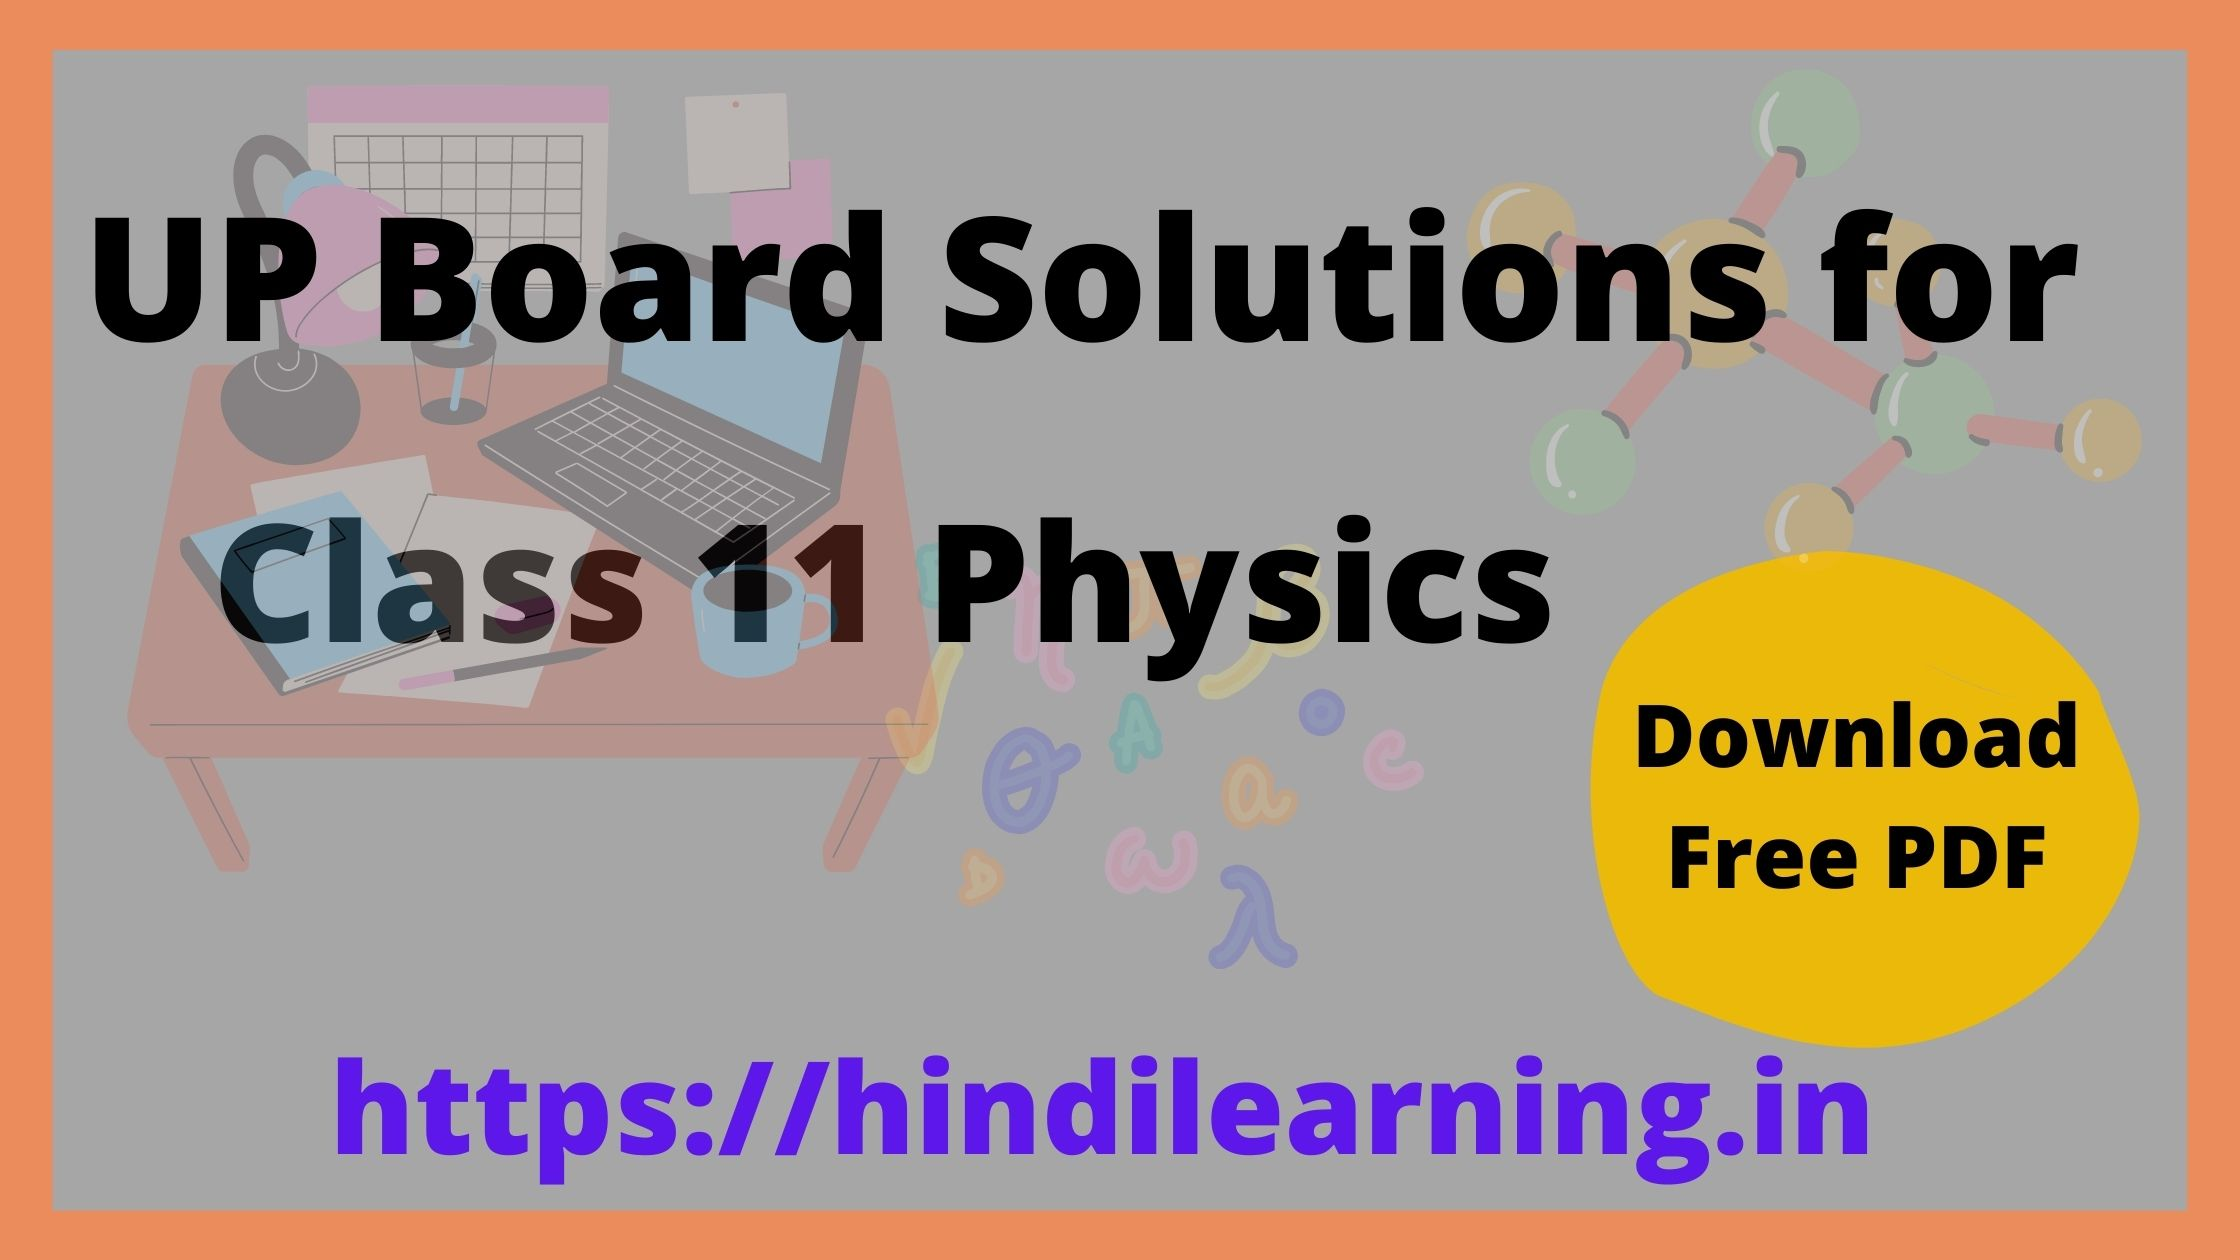 UP Board Solutions for Class 11 Physics भौतिक विज्ञान